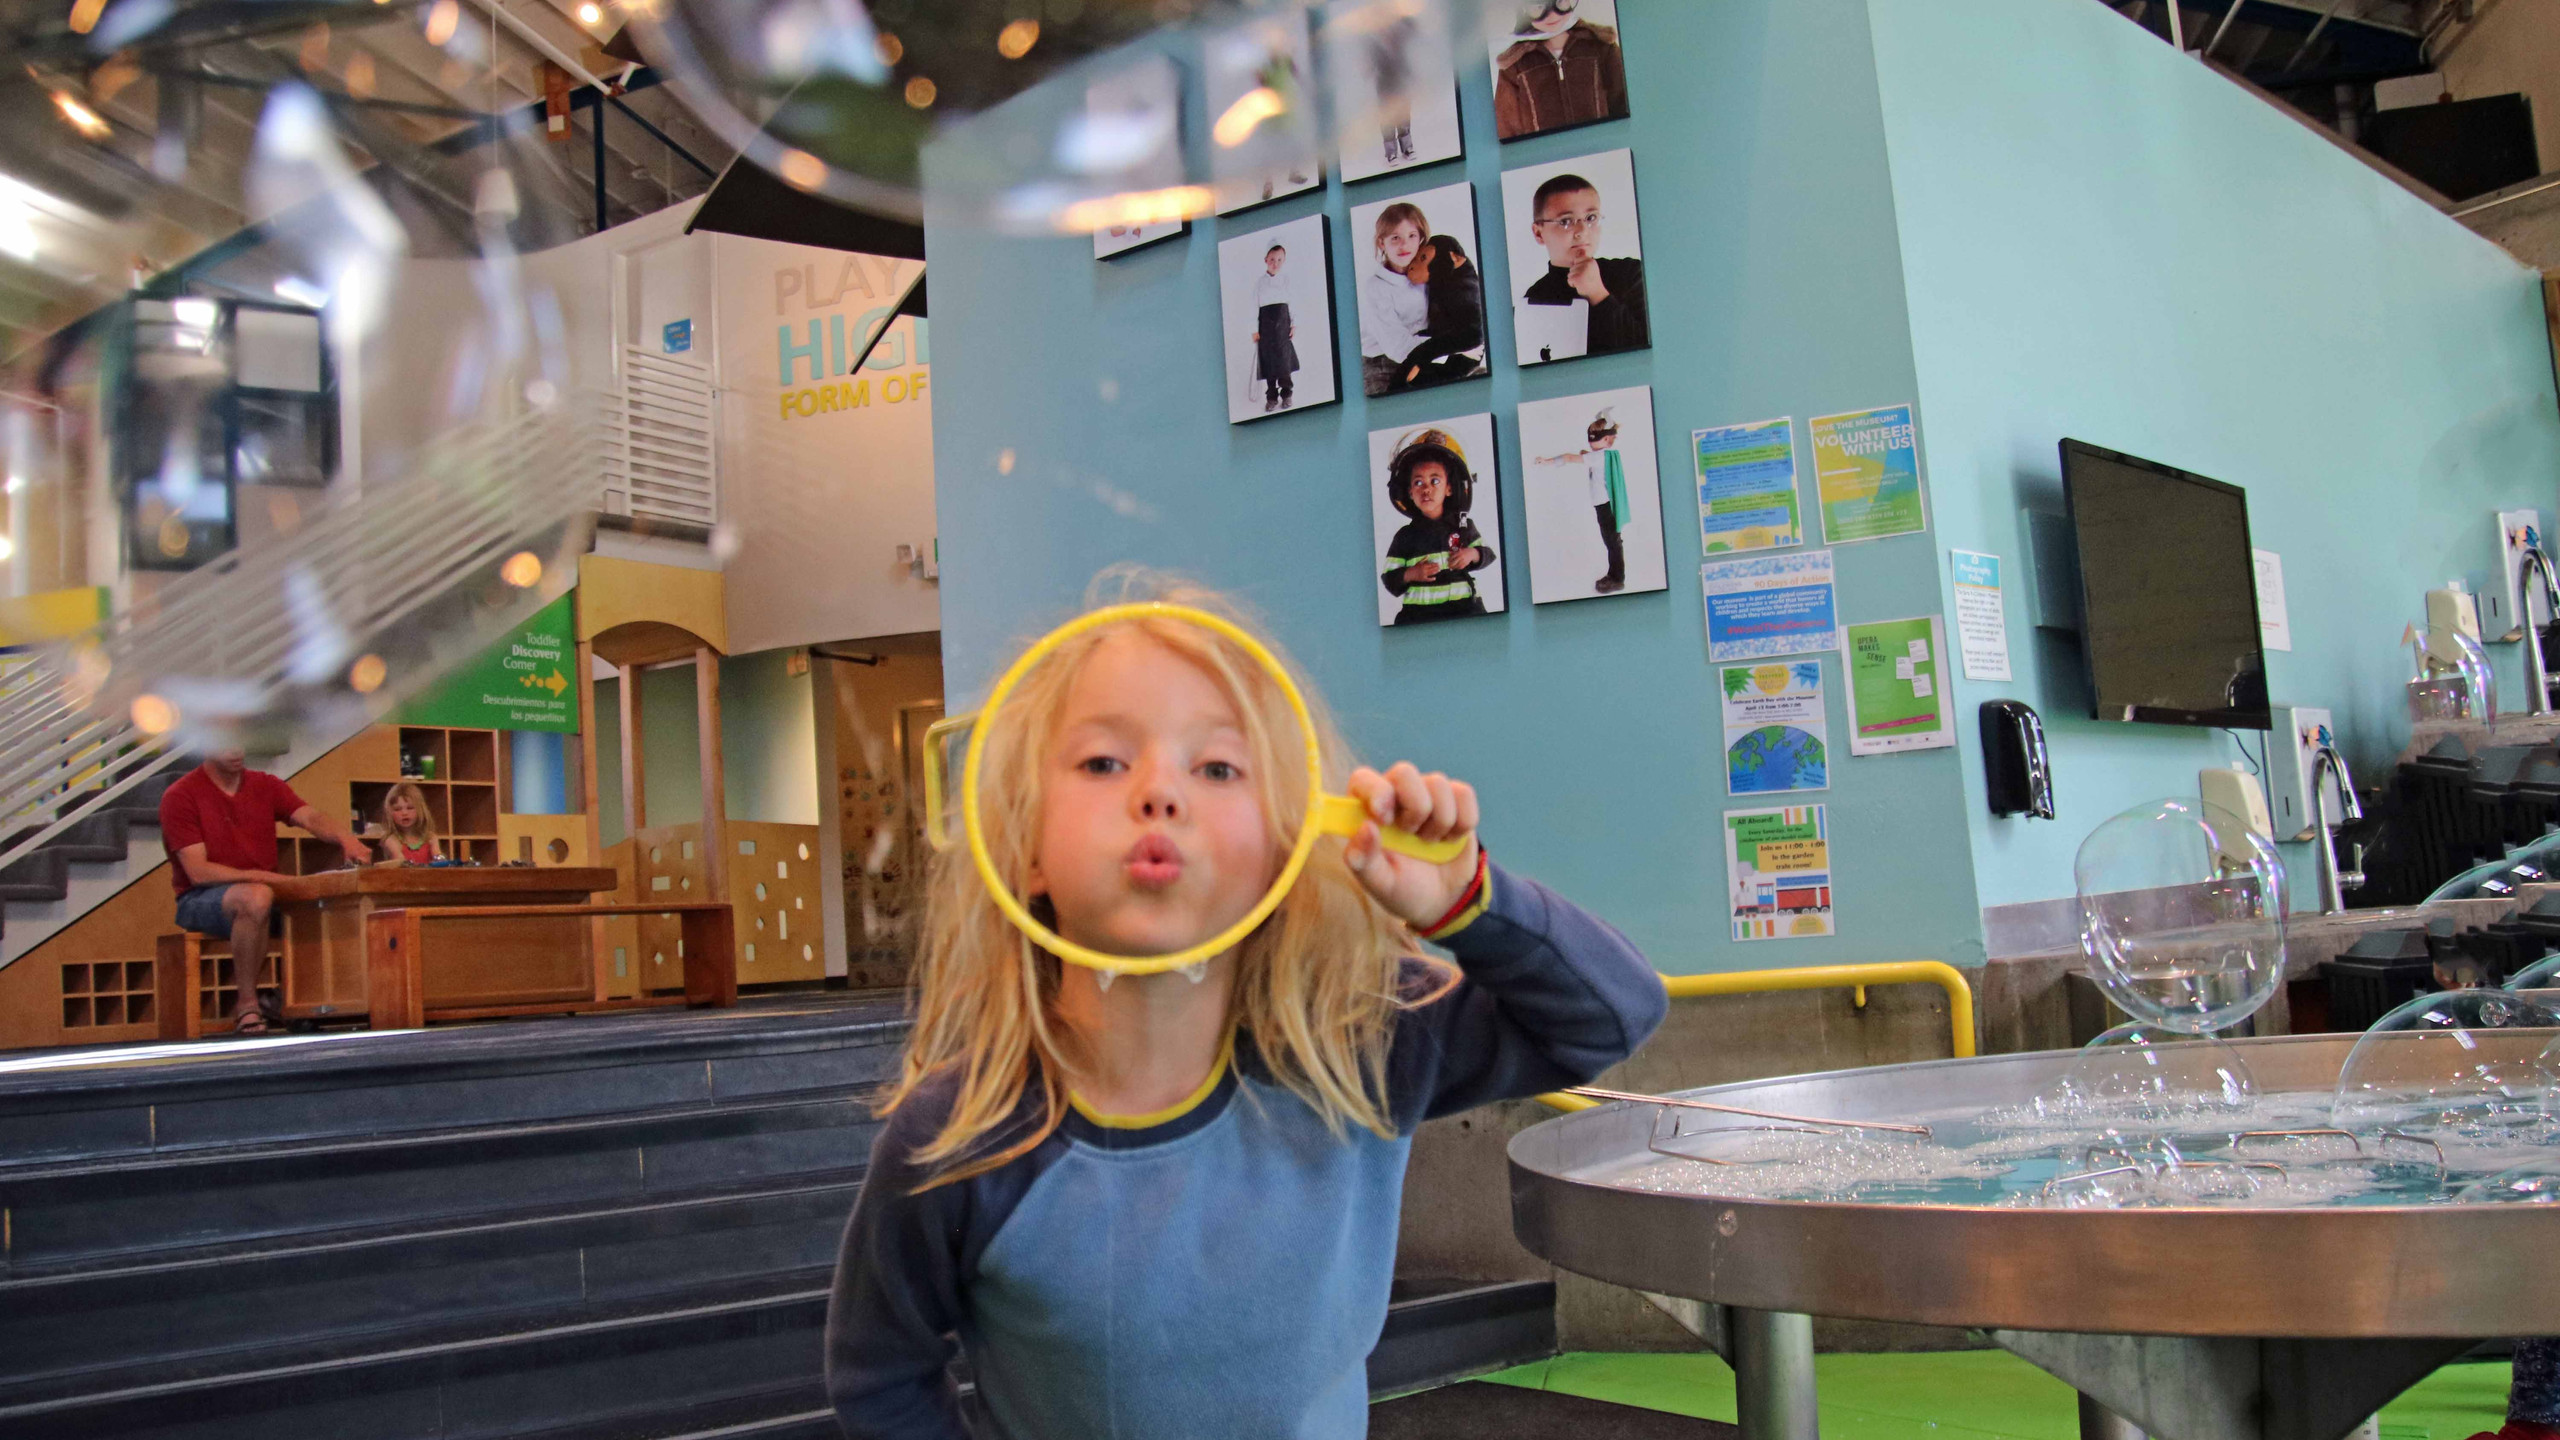 Blonde boy in blue shirt blowing a bubble at the bubble area at the Santa Fe Children's Museum